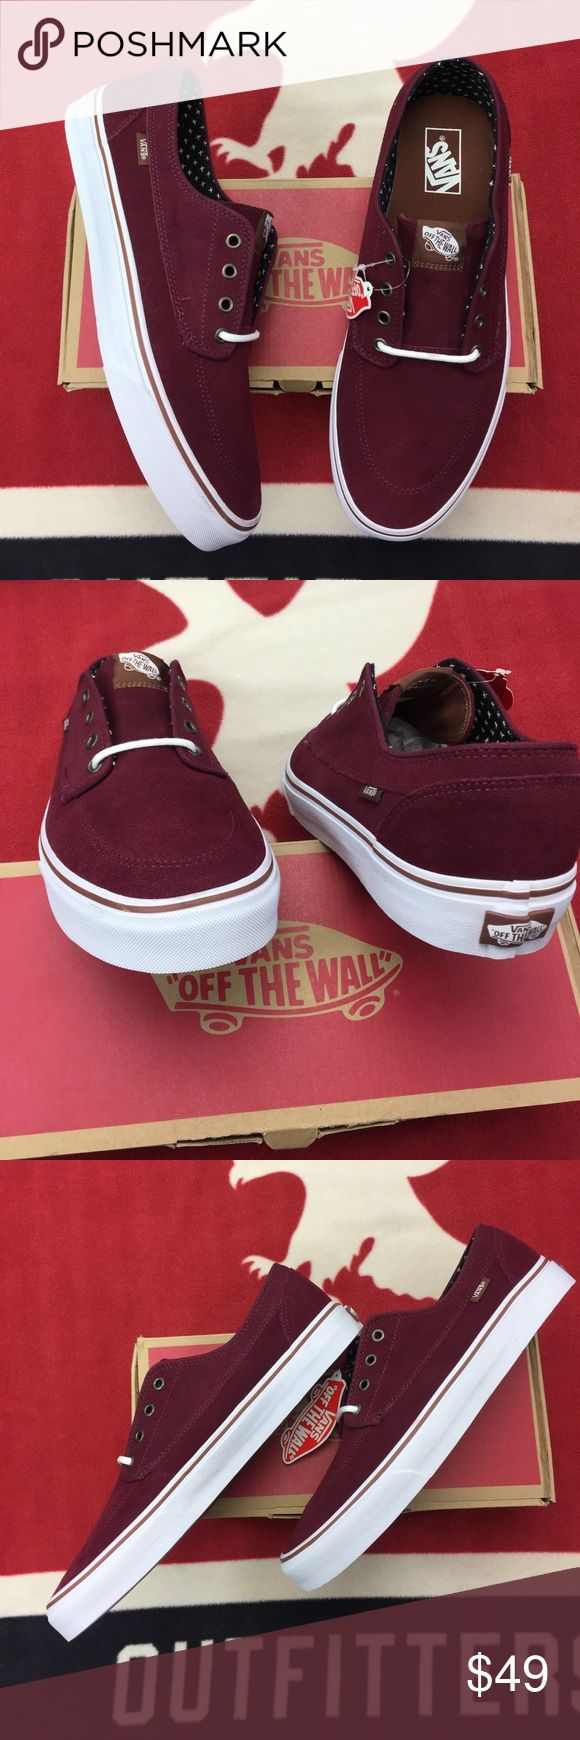 Vans Brigata Windsor Wine Suede Vans nautically inspired Brigata has a durable four-eyelet canvas upper, classic boat shoe styling, metal eyelets, contrast liner, Vans flag label and Vans Original Waffle Outsole. Vans Shoes Sneakers